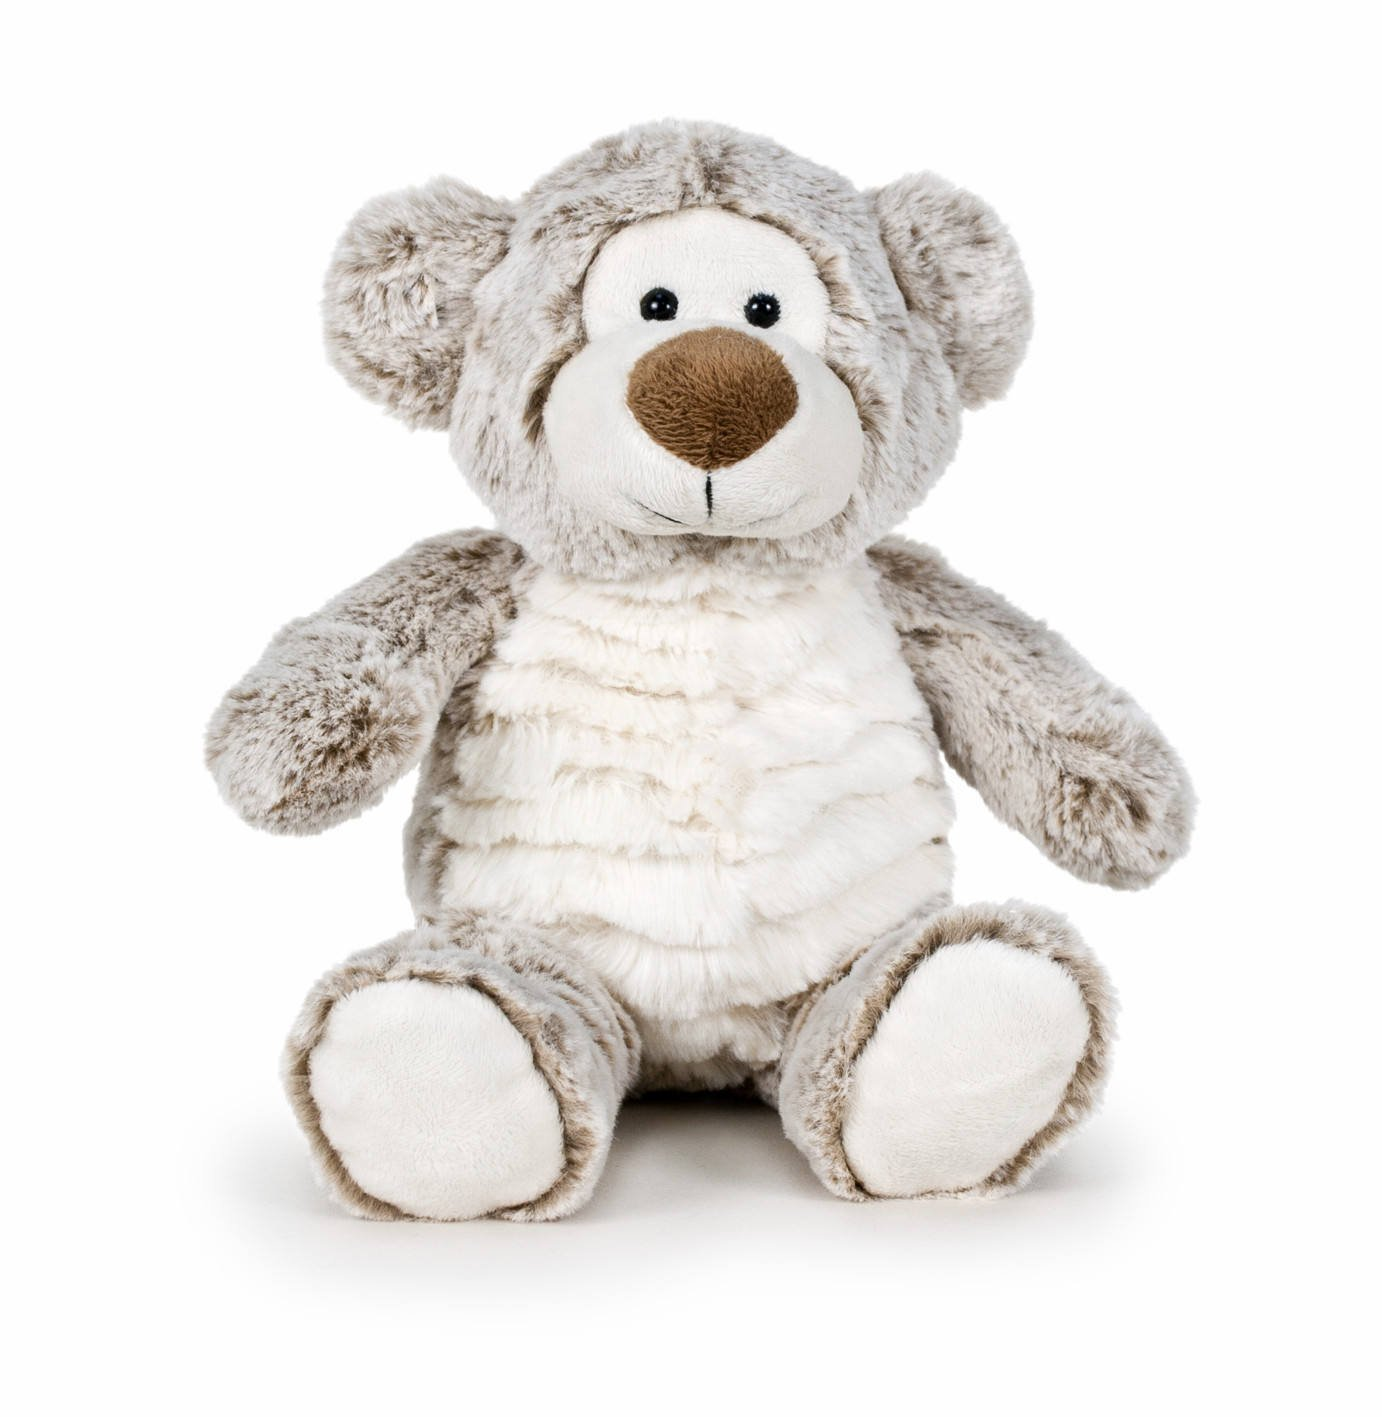 Famosa Softies Peluche Animales Boutique Oso (760010042): Amazon.es: Juguetes y juegos